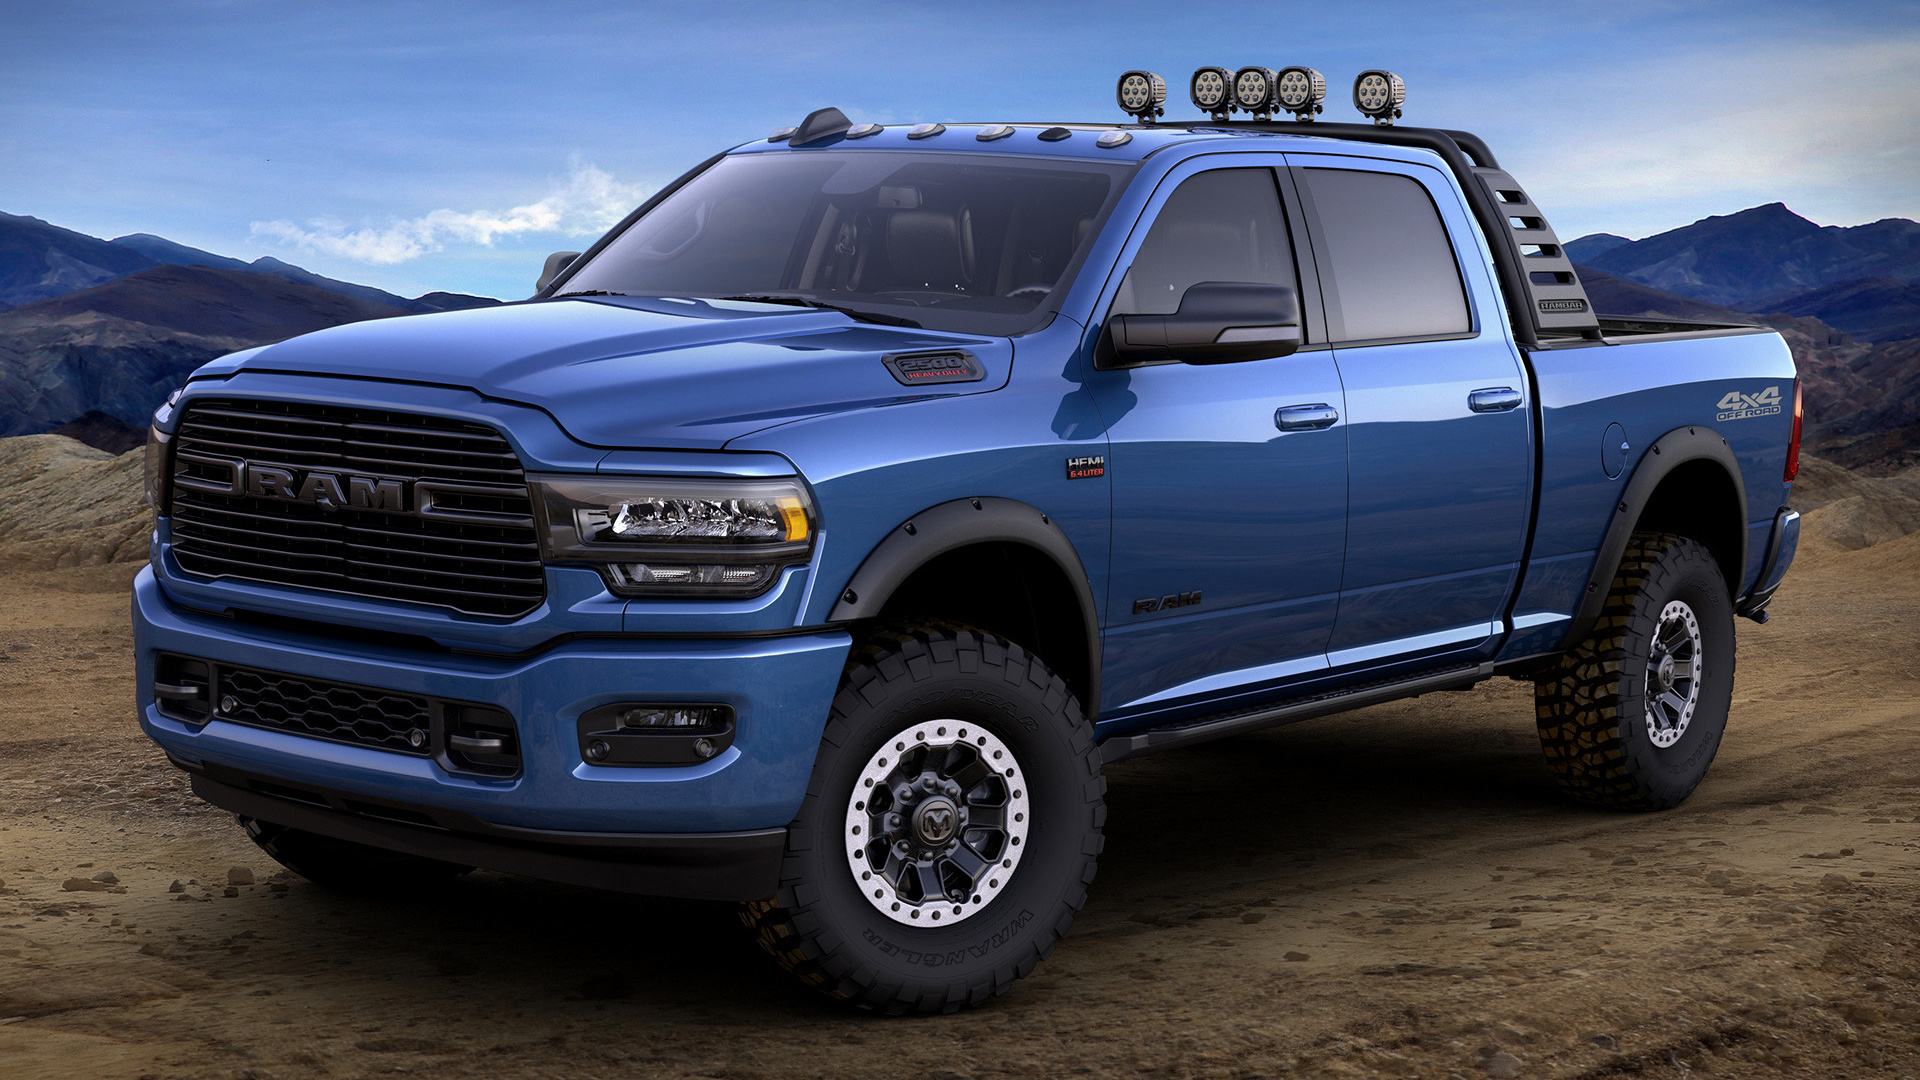 Ram Hd Big Horn Crew Cab By Mopar Wallpaper Hd on Dodge Ram Regular